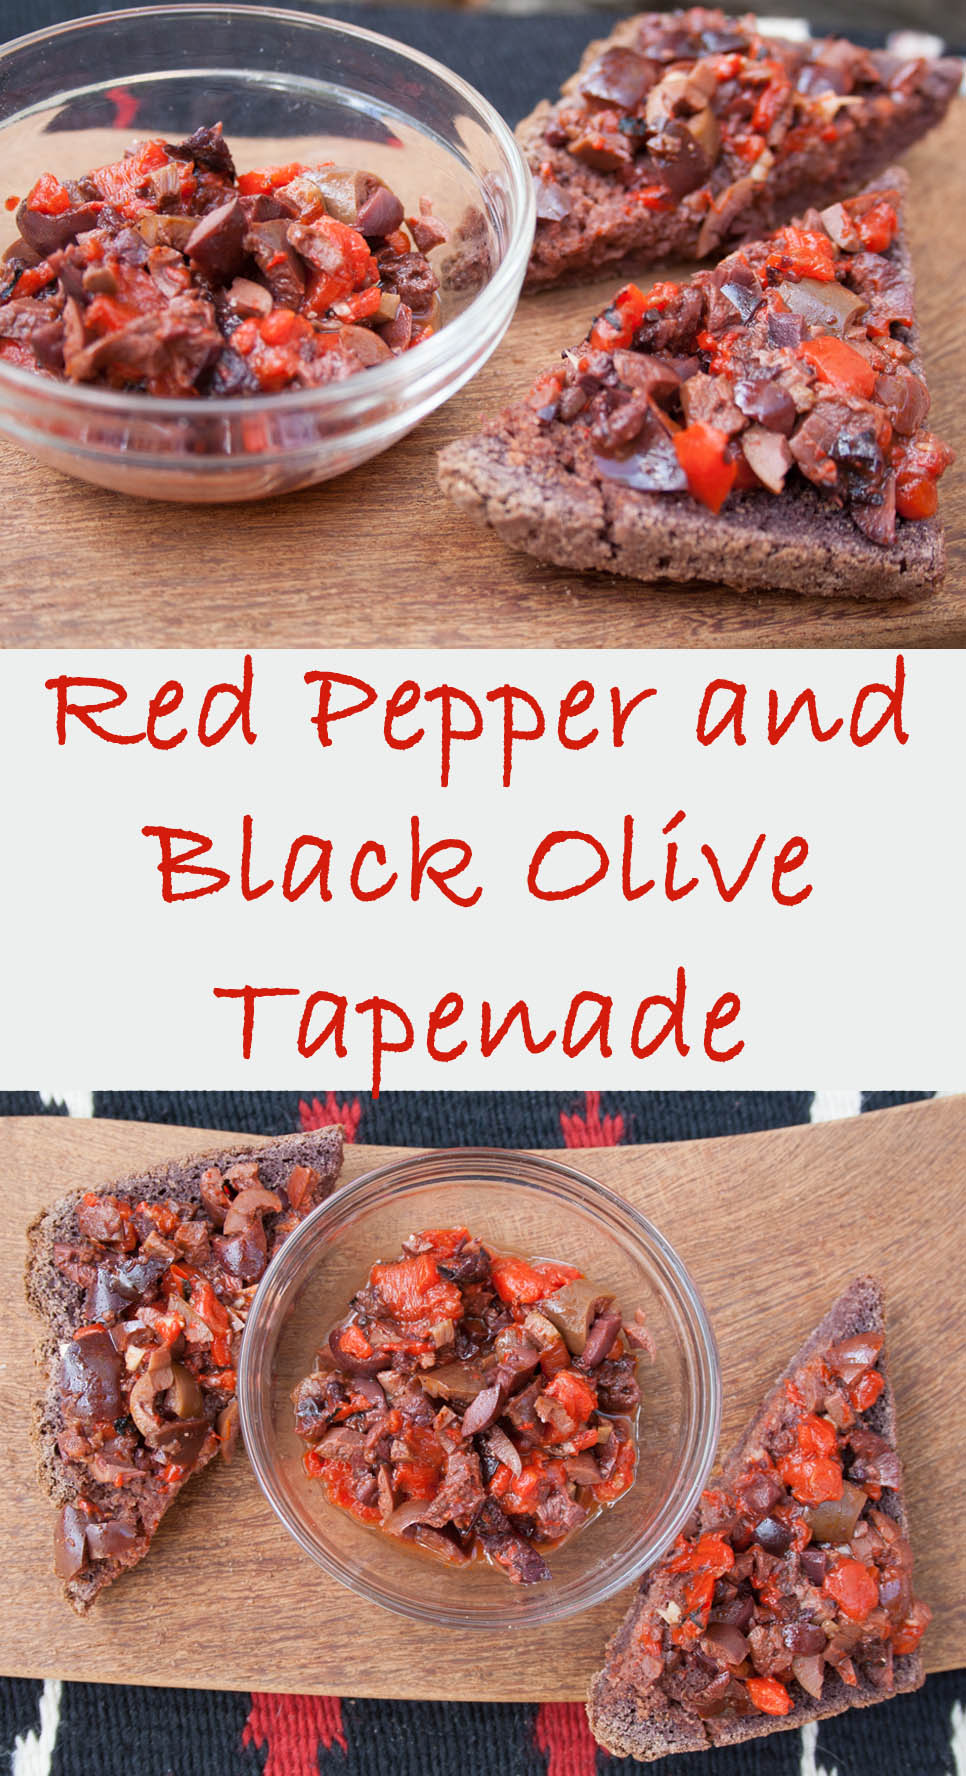 Red Pepper and Black Olive Tapenade (vegan, gluten free) - This tapenade is perfect for entertaining because it comes together in minutes!